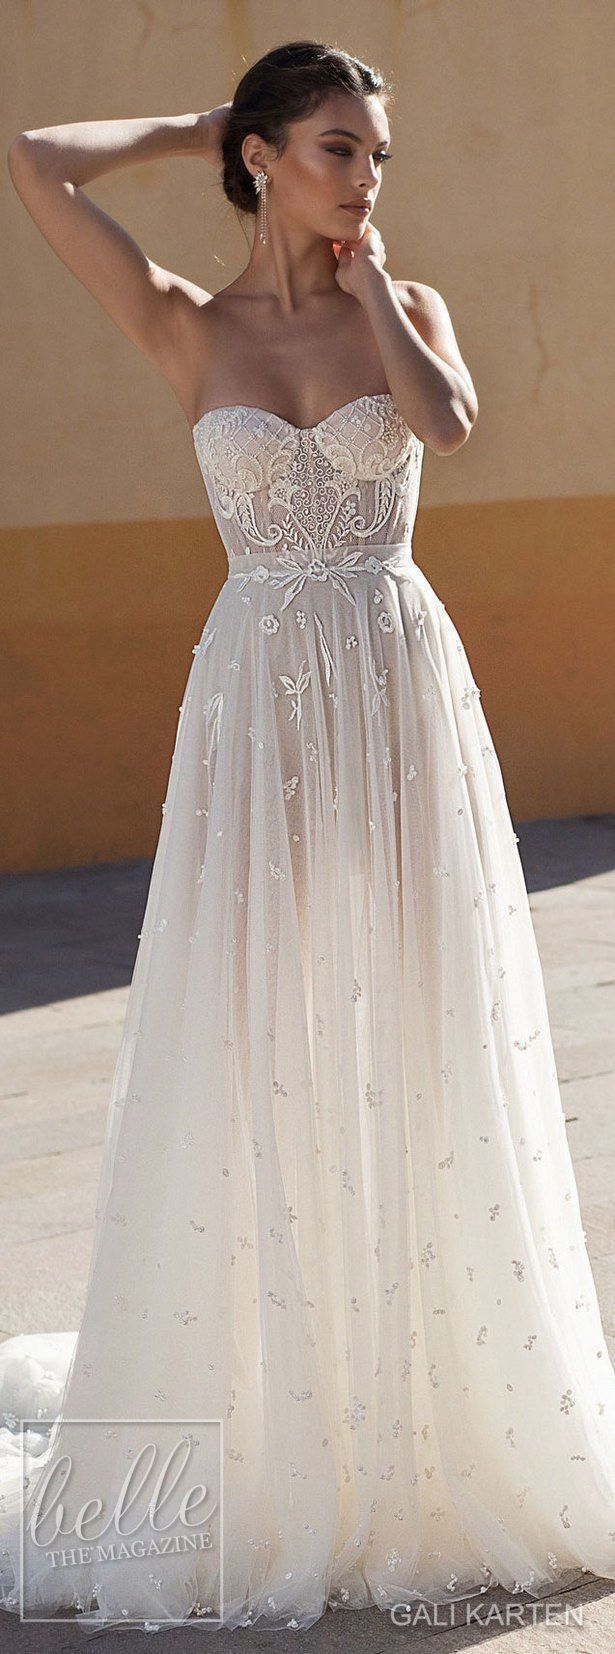 Gali karten wedding dress burano bridal collection